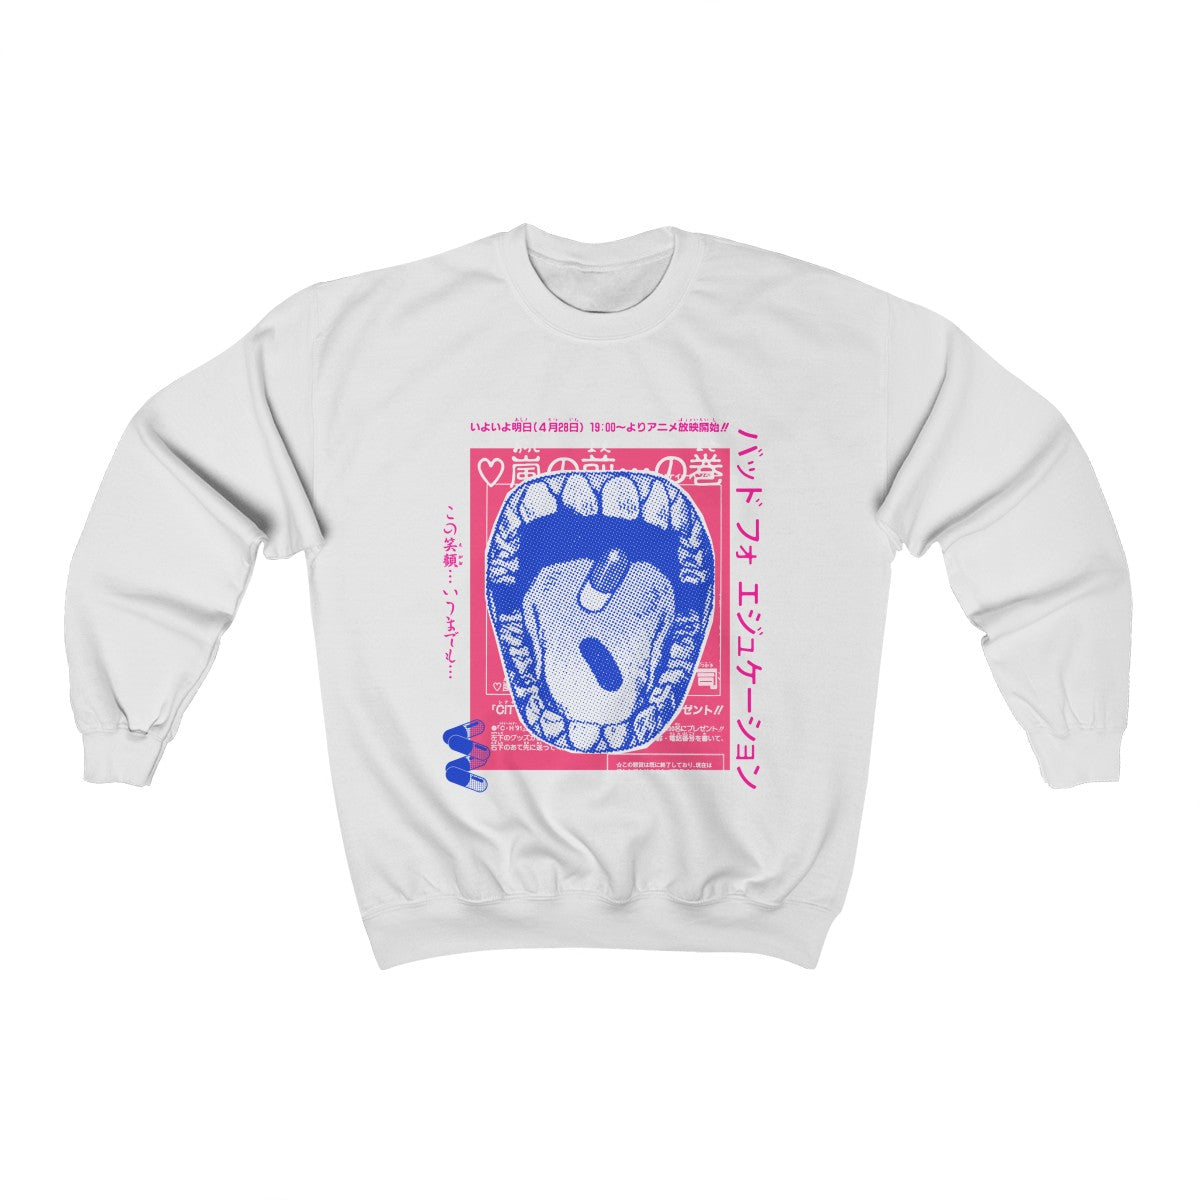 Good For Health - Unisex Sweatshirt